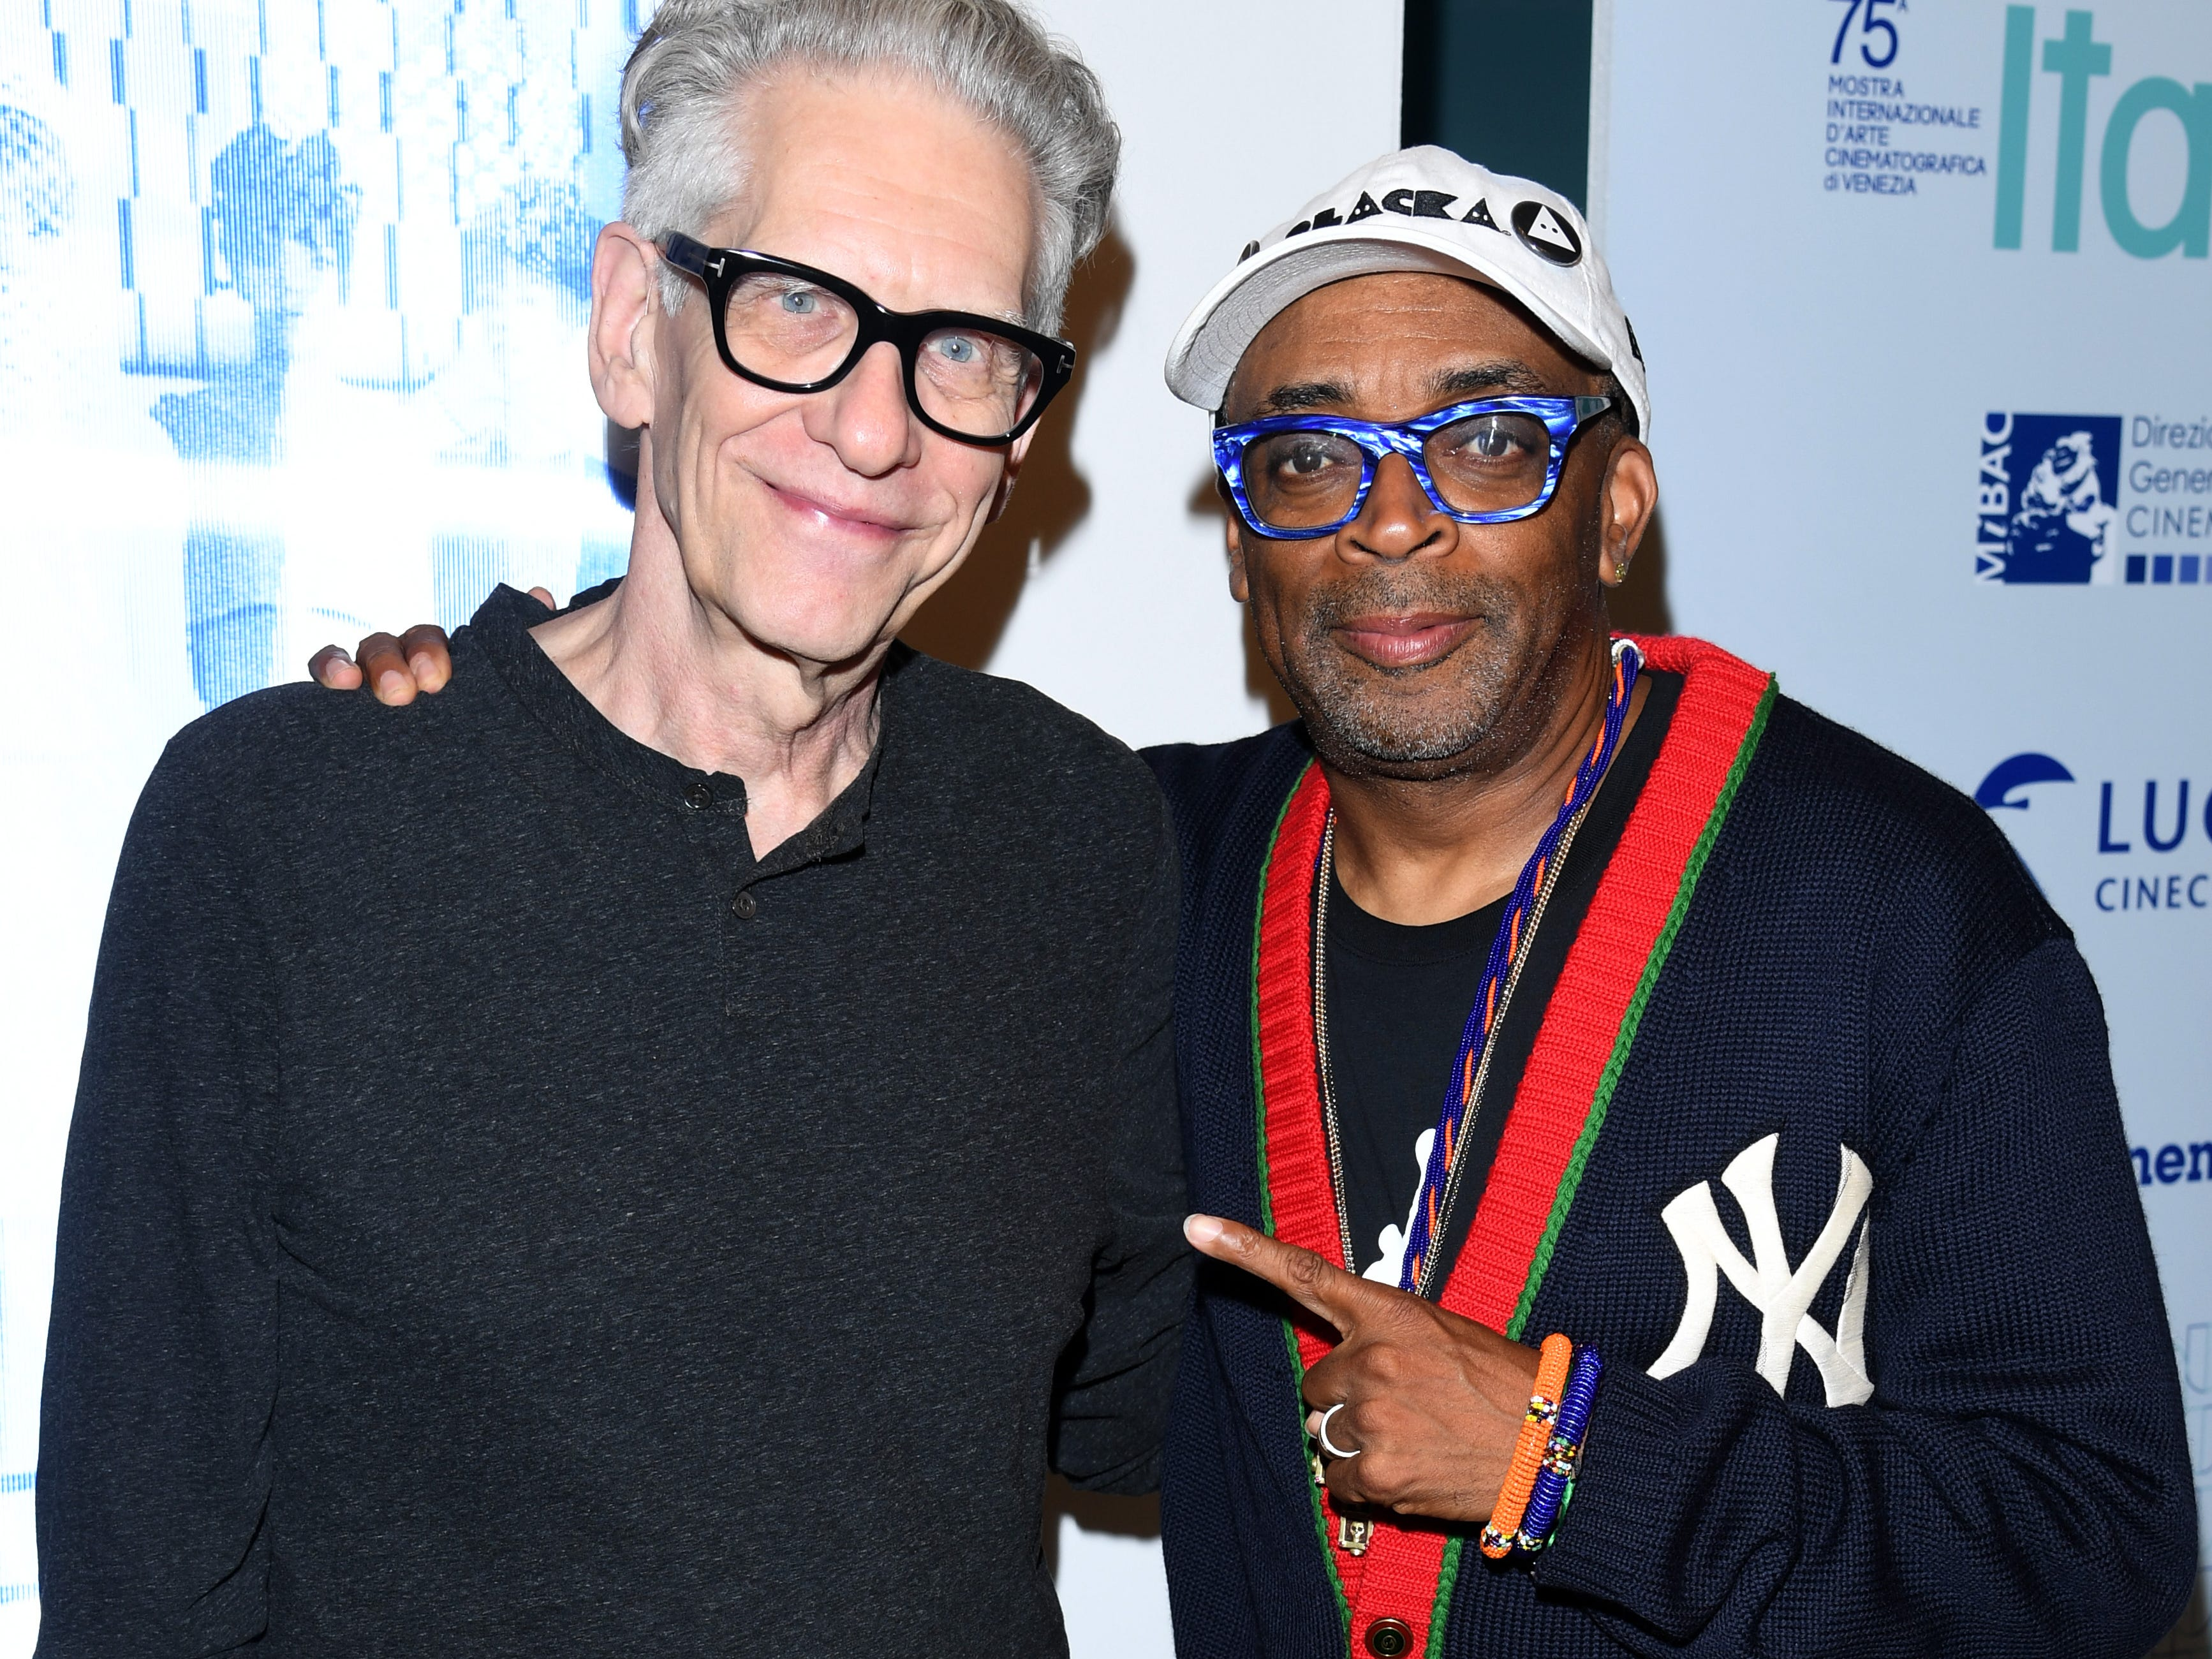 Filmmakers Spike Lee (right) and David Cronenberg attend Innovating The Creative Experience, The Future Of Cinema during the 75th Venice Film Festival at Excelsior Hotel.